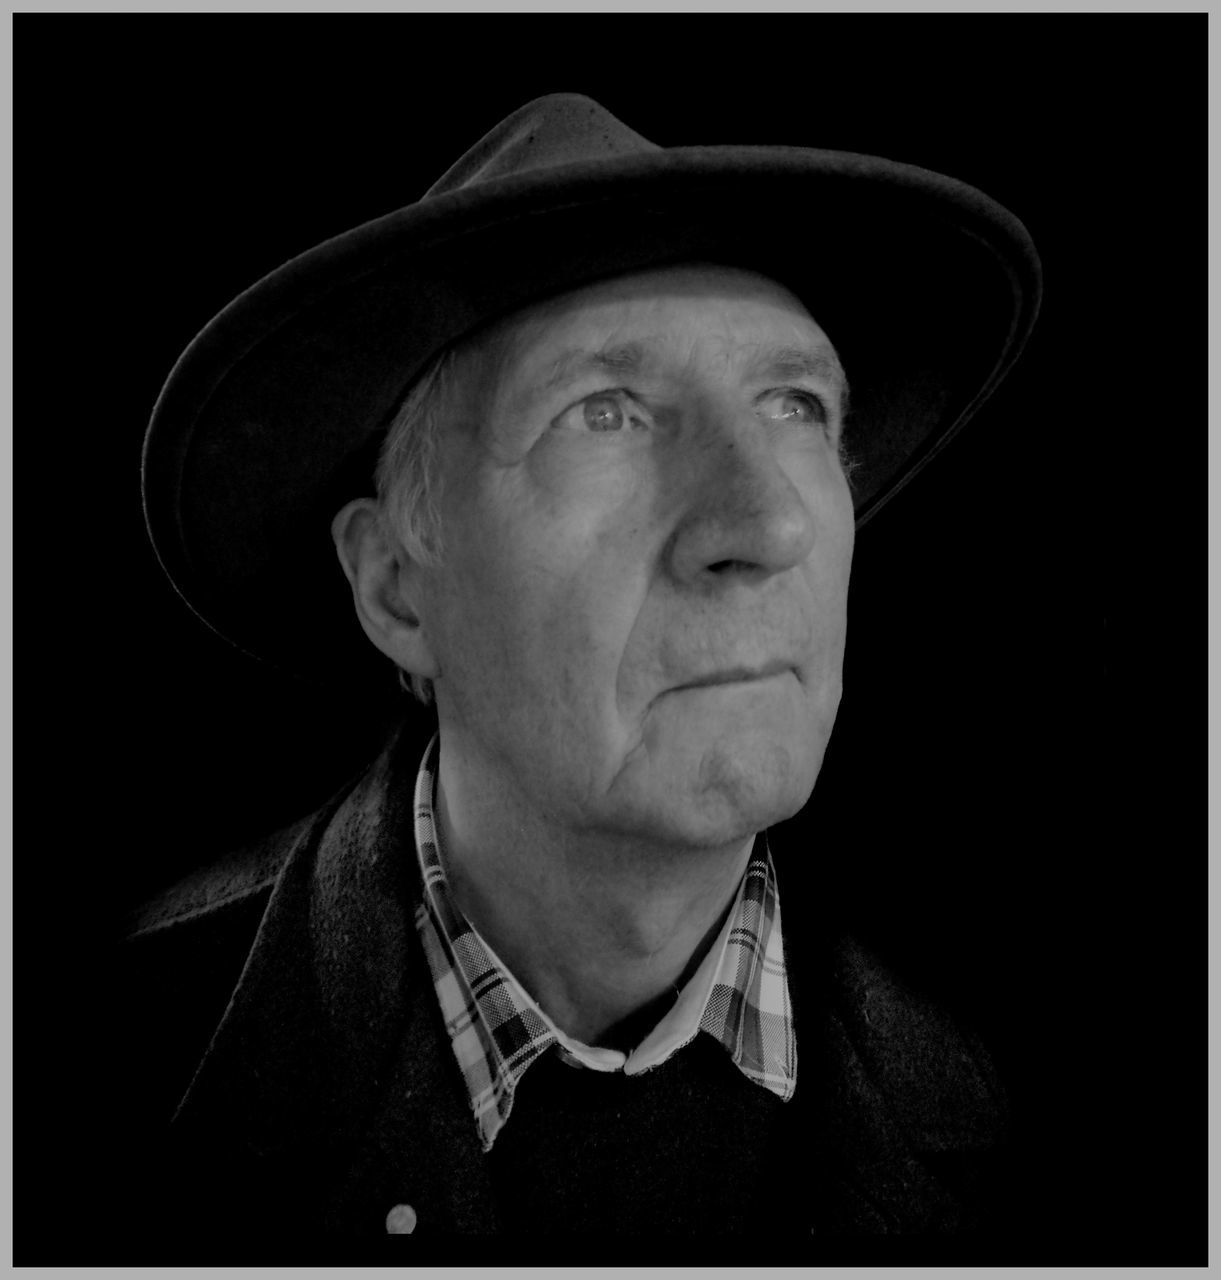 hat, headshot, real people, portrait, one person, looking at camera, black background, senior men, senior adult, lifestyles, cowboy hat, men, close-up, outdoors, day, people